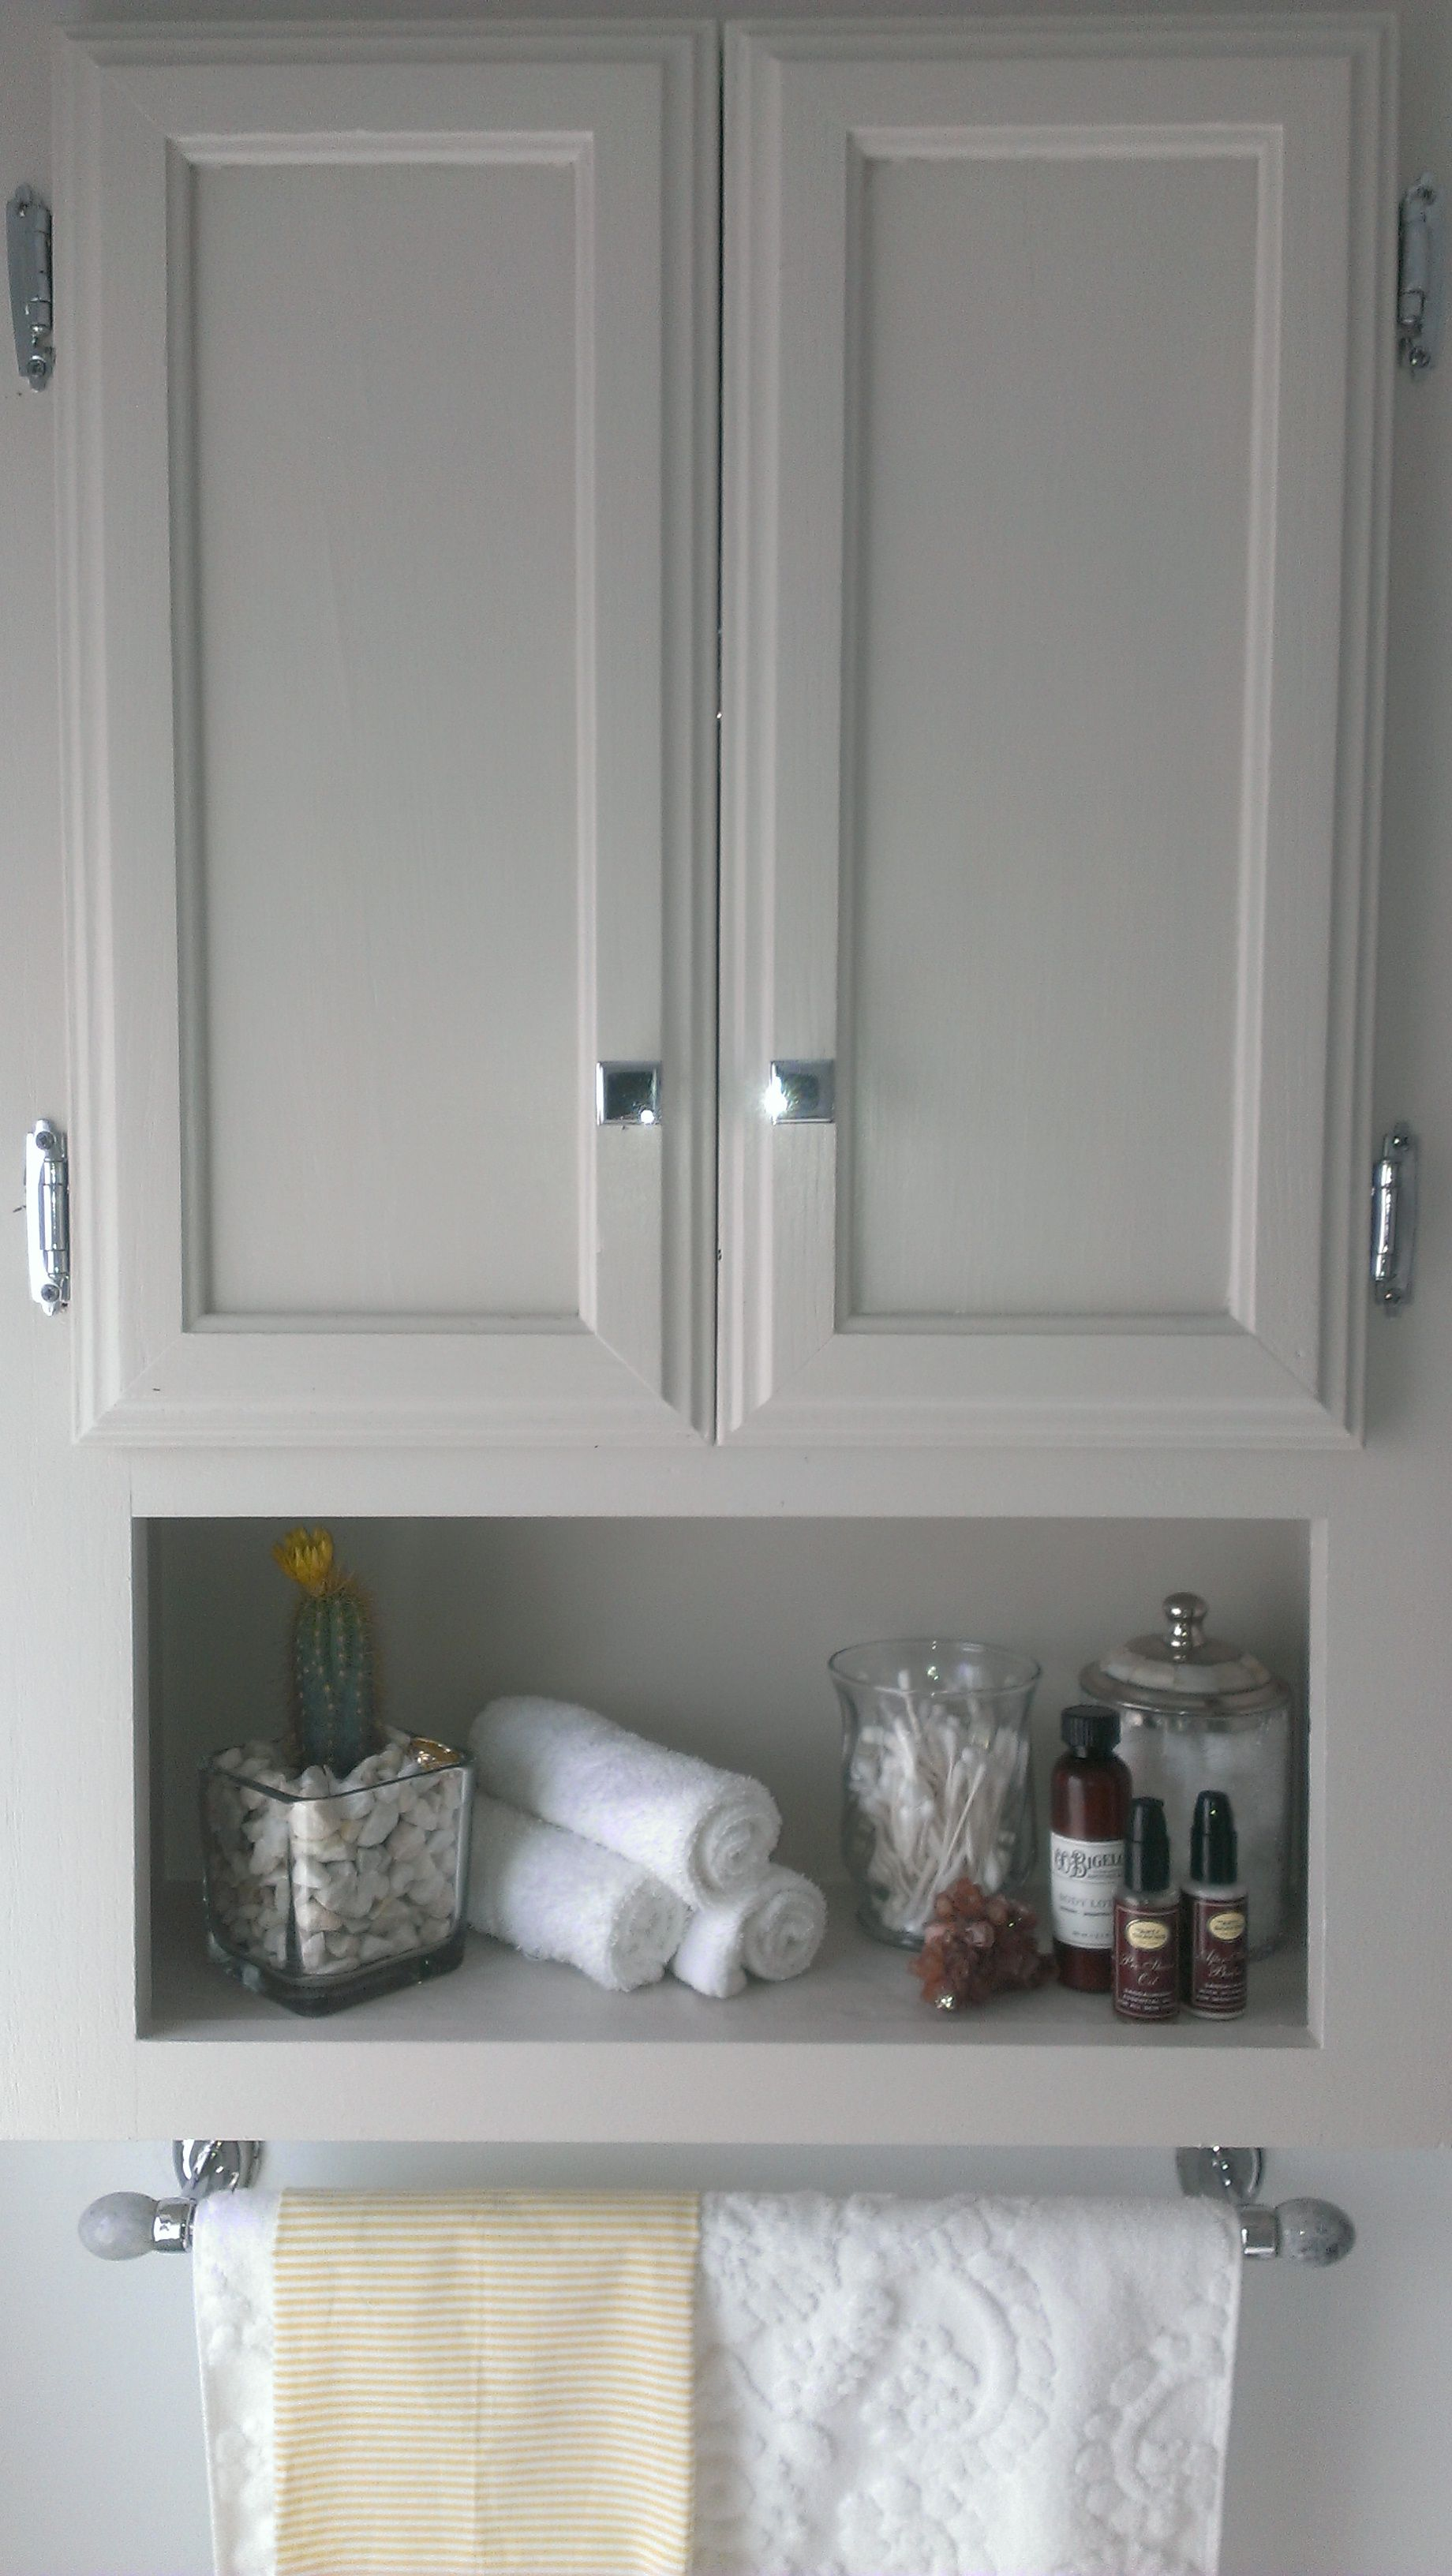 20 Bathroom Cabinet Above Toilet, Over The Toilet Wall Cabinet With Towel Bar